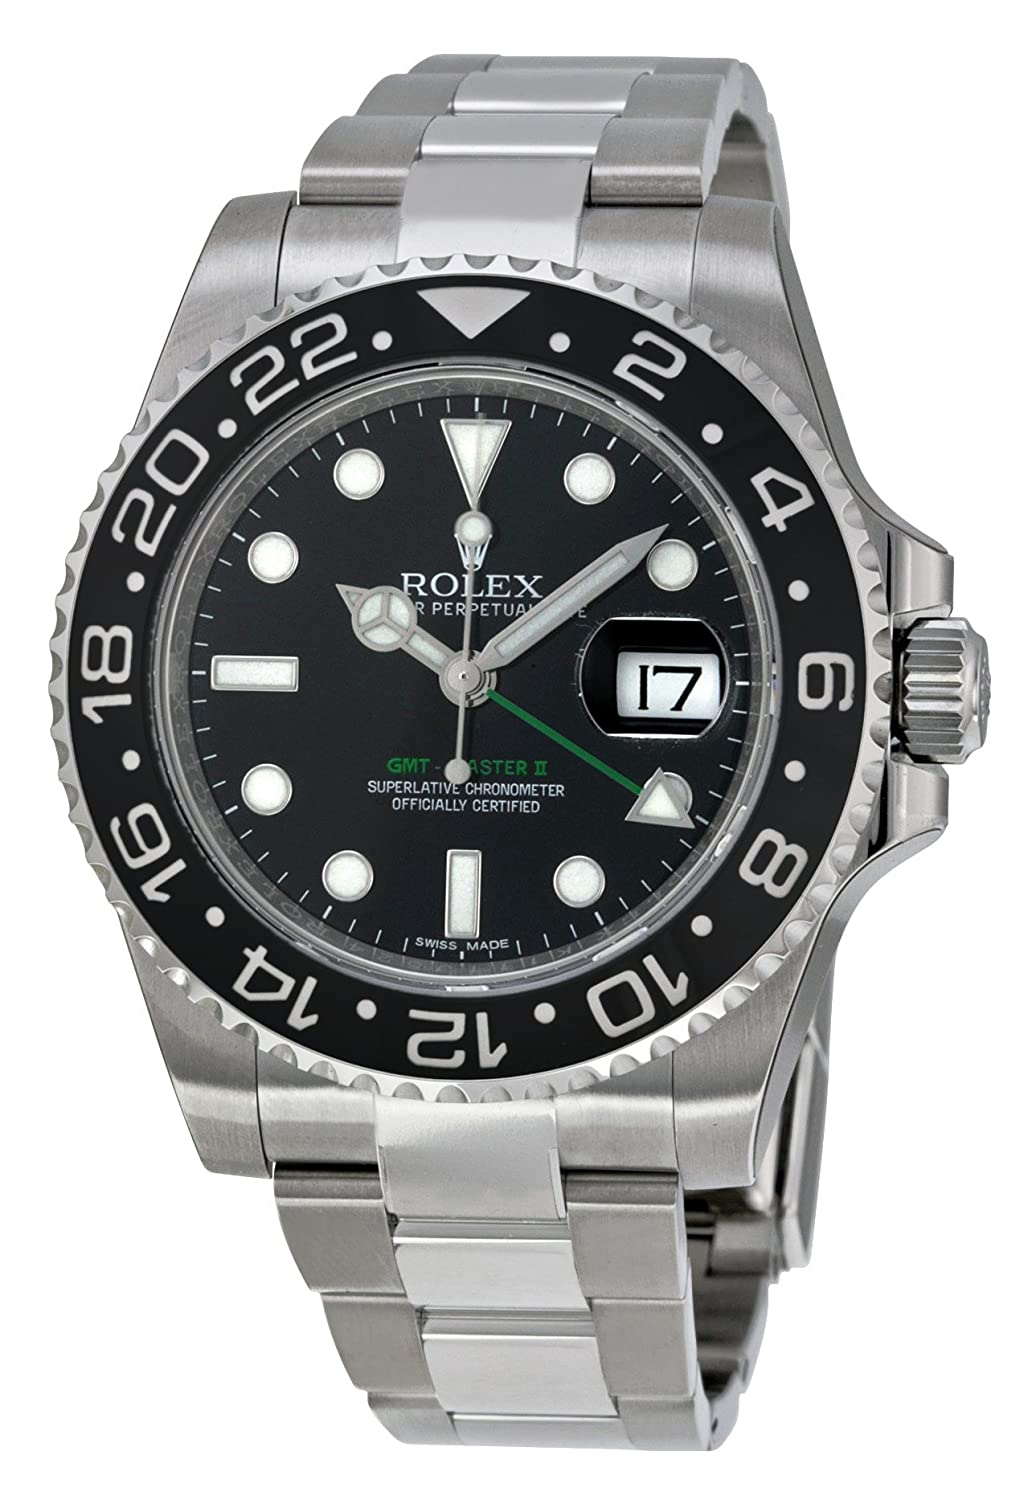 6d798190647 Amazon.com  Rolex GMT Master II Black Index Dial Oyster Bracelet Steel Mens  Watch 116710BKSO  Rolex  Watches